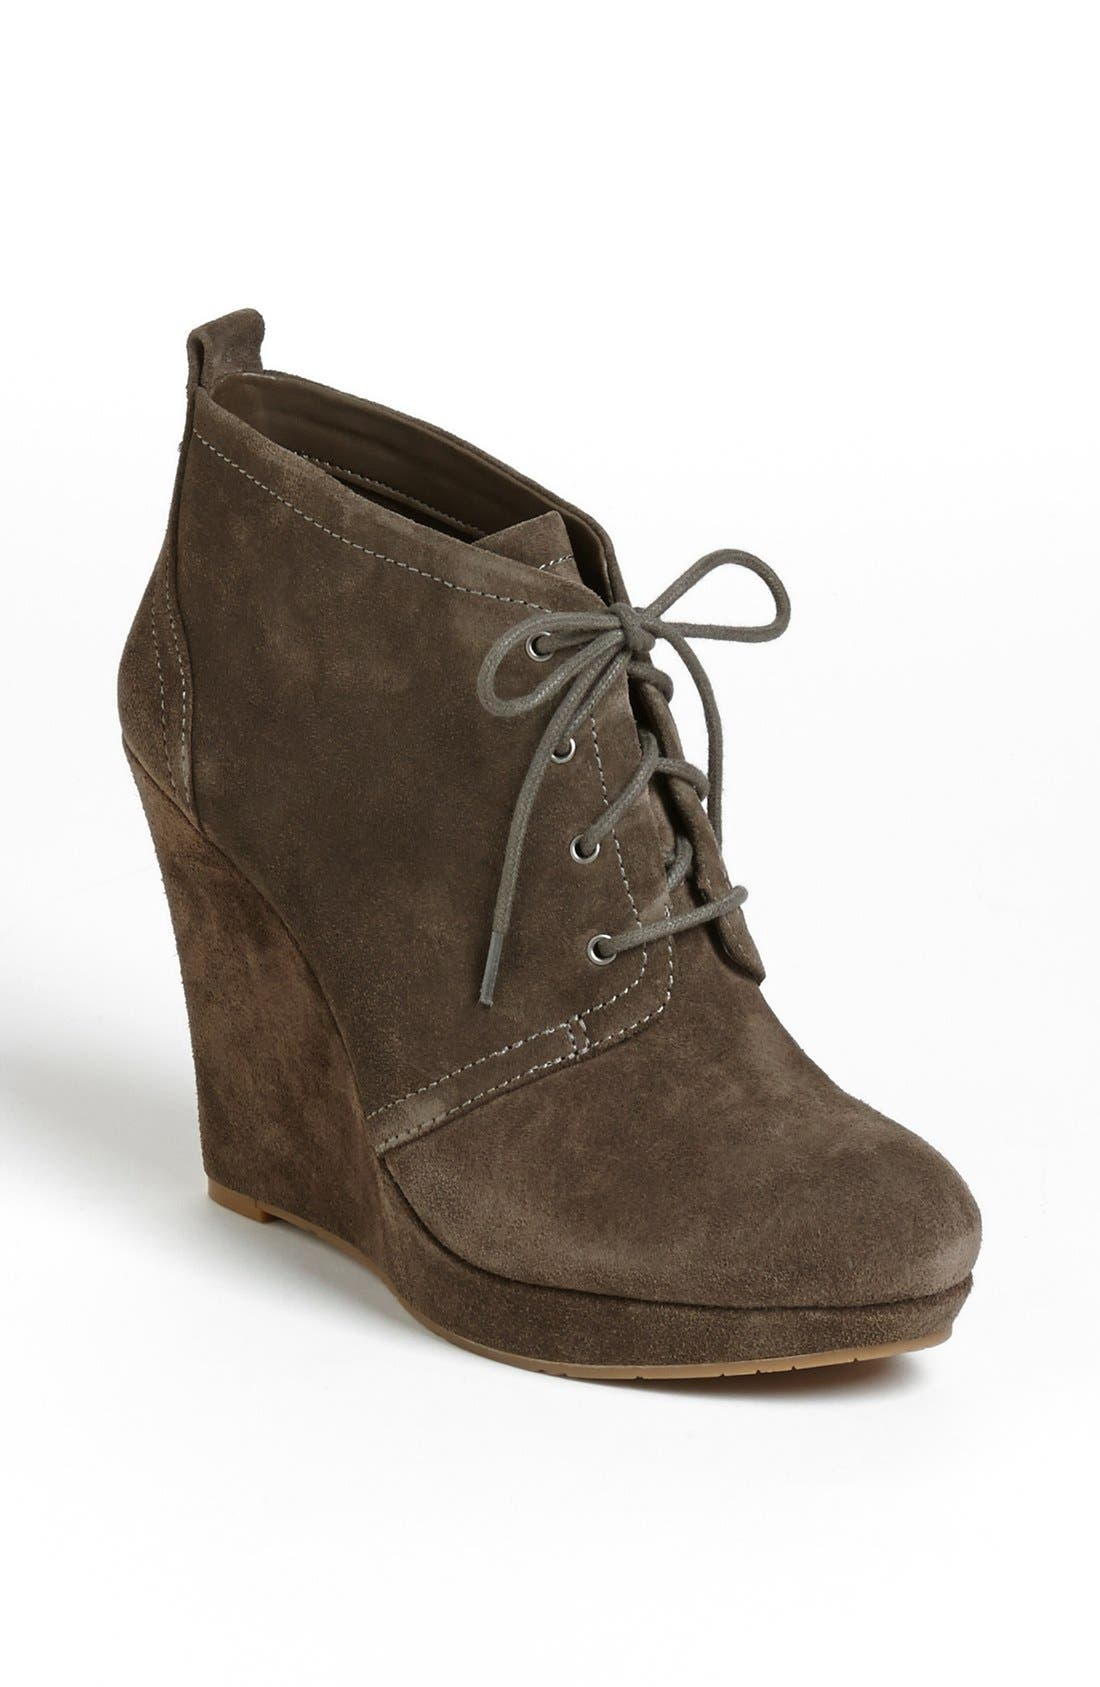 Main Image - Jessica Simpson 'Catcher' Bootie